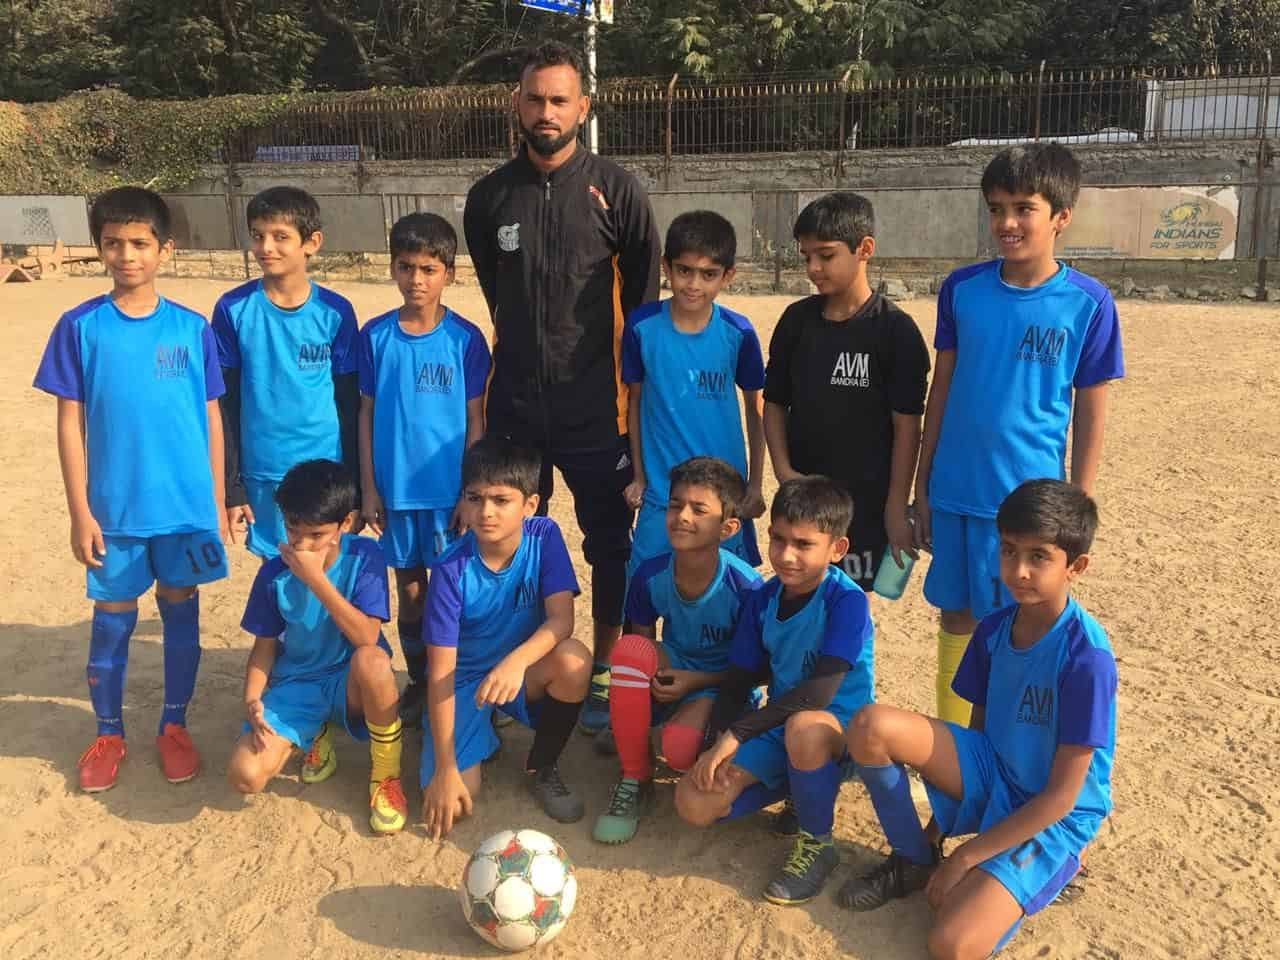 Another Win for U/10 Boy Football Team